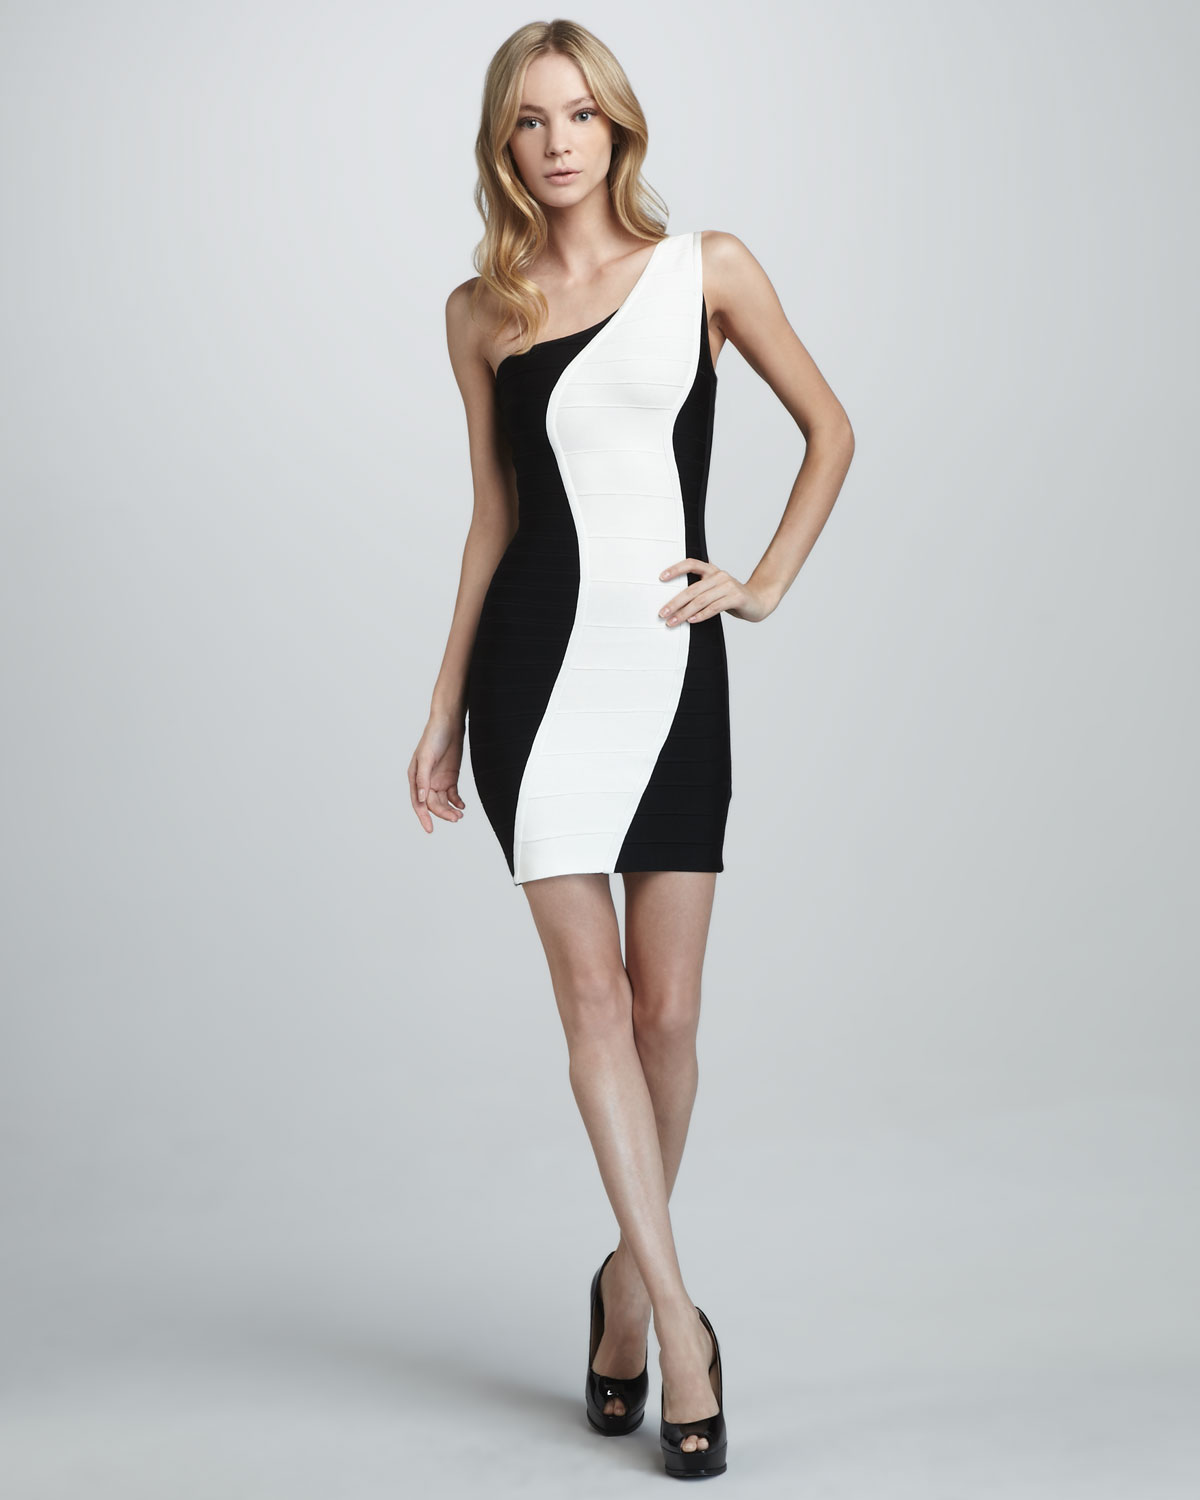 White And Black Dress 7 Free Wallpaper